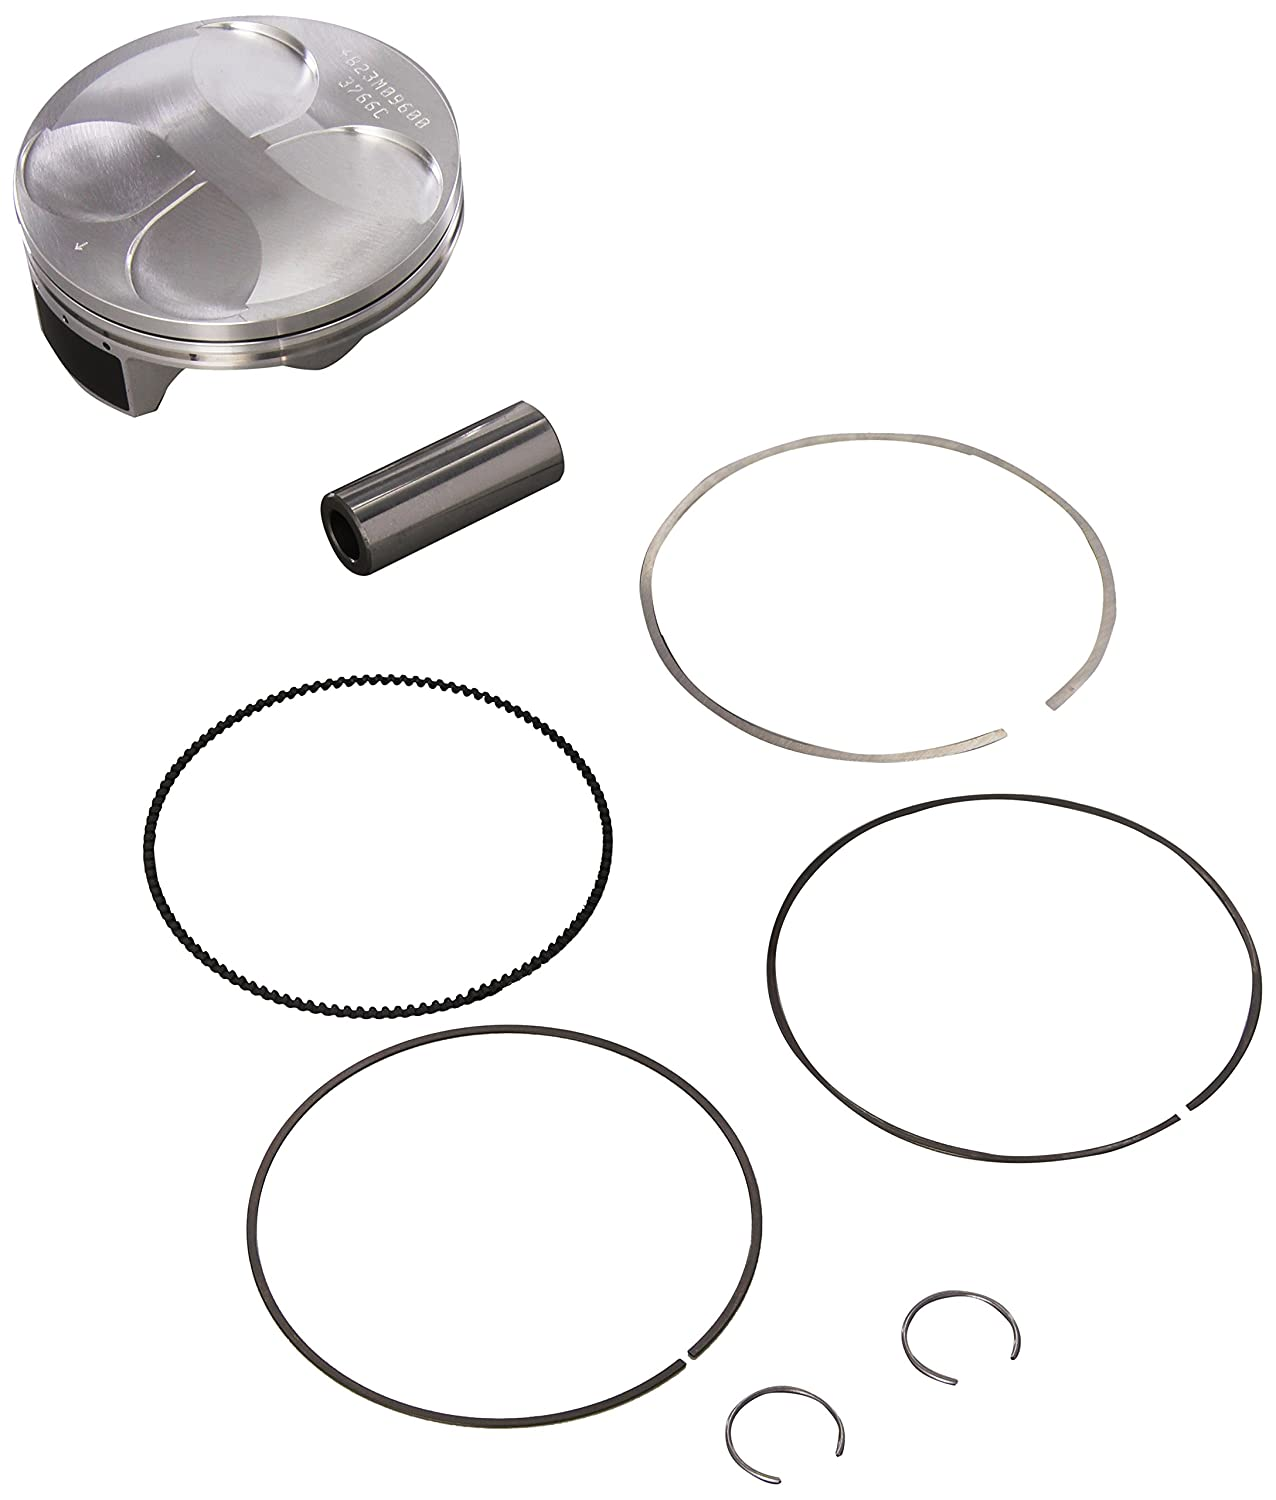 Wiseco 4823M09600 96.00mm 13.5:1 Compression 449cc Motorcycle Piston Kit